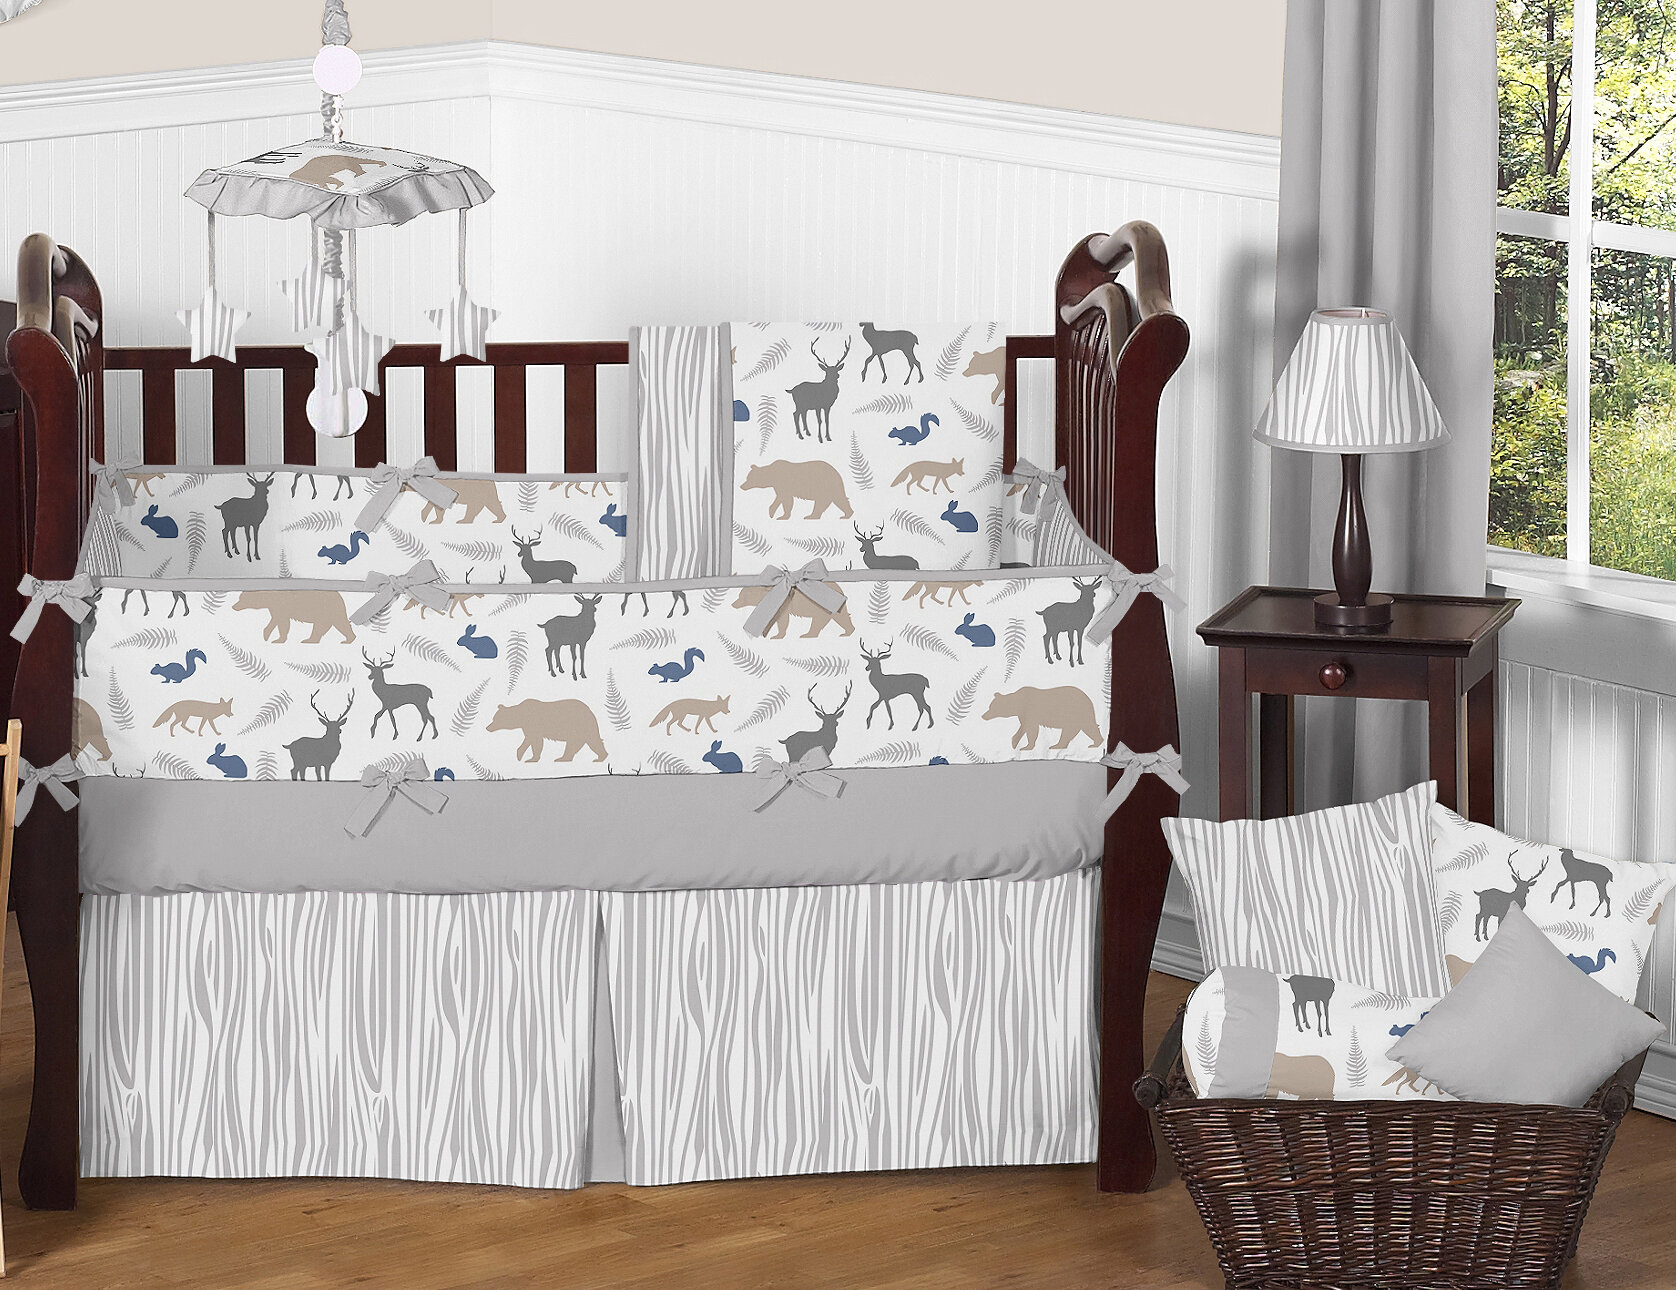 Sweet jojo designs woodland animals piece crib bedding set